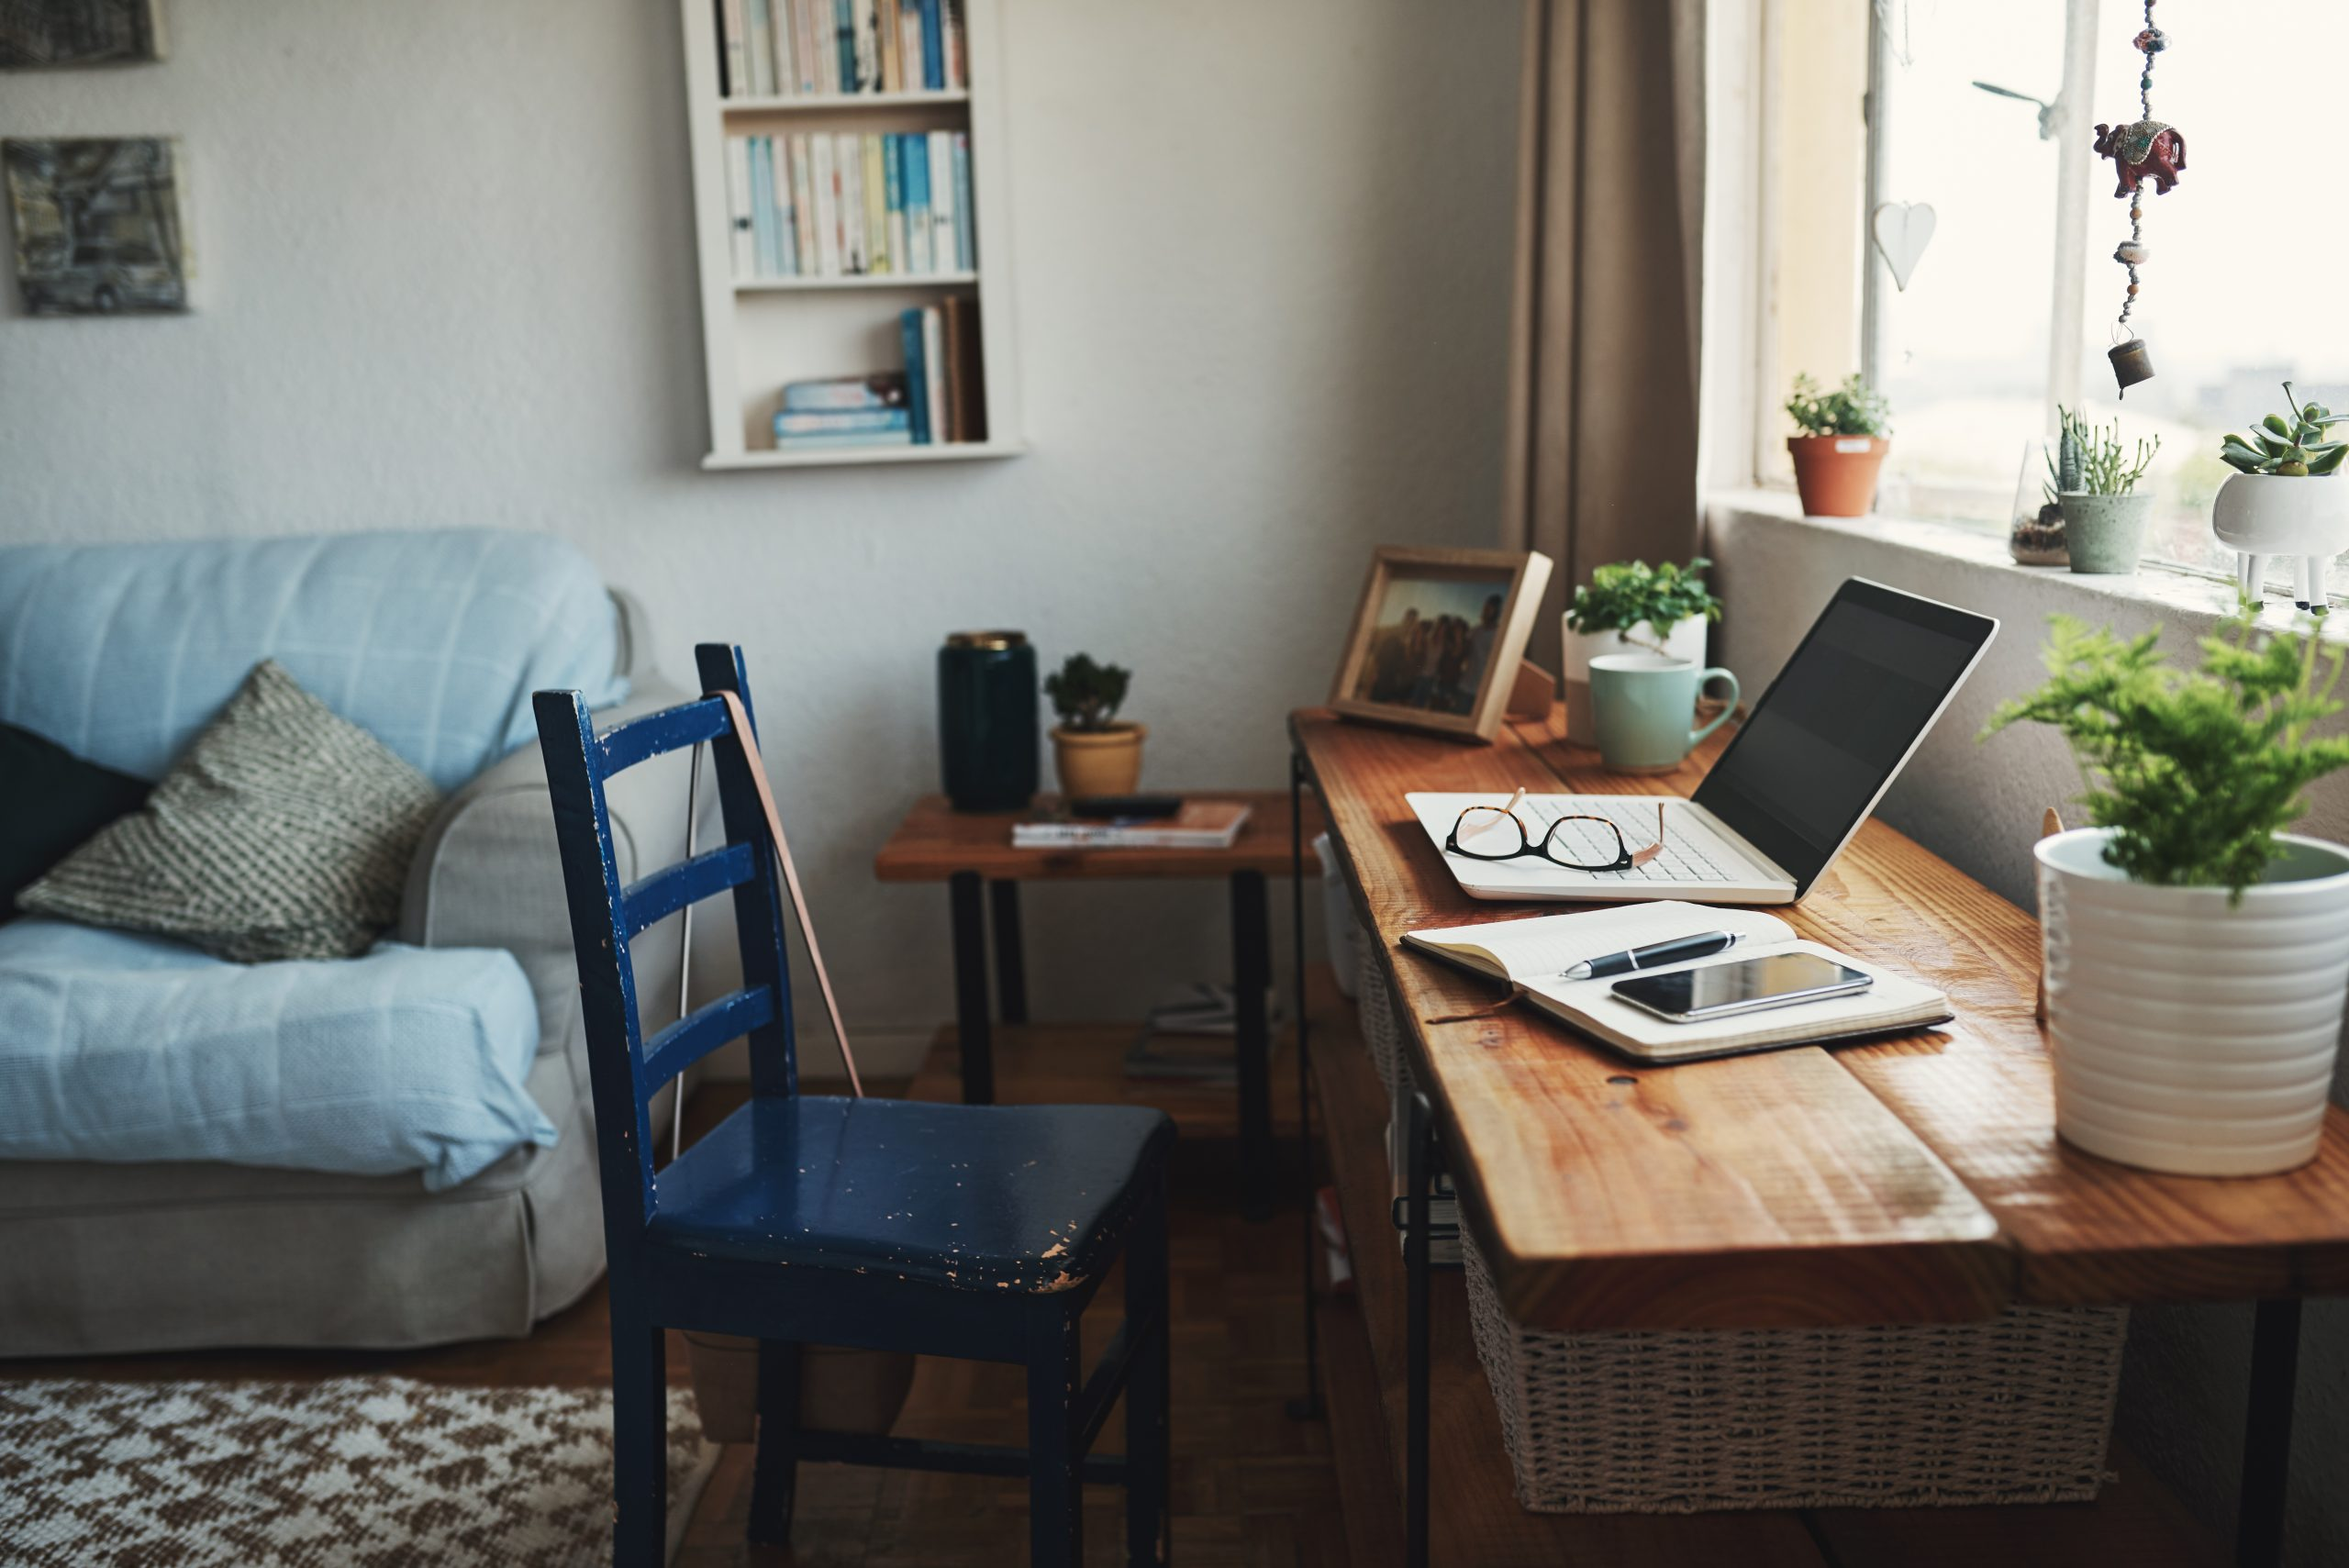 The difference between working from home and 'quarantined' working from home